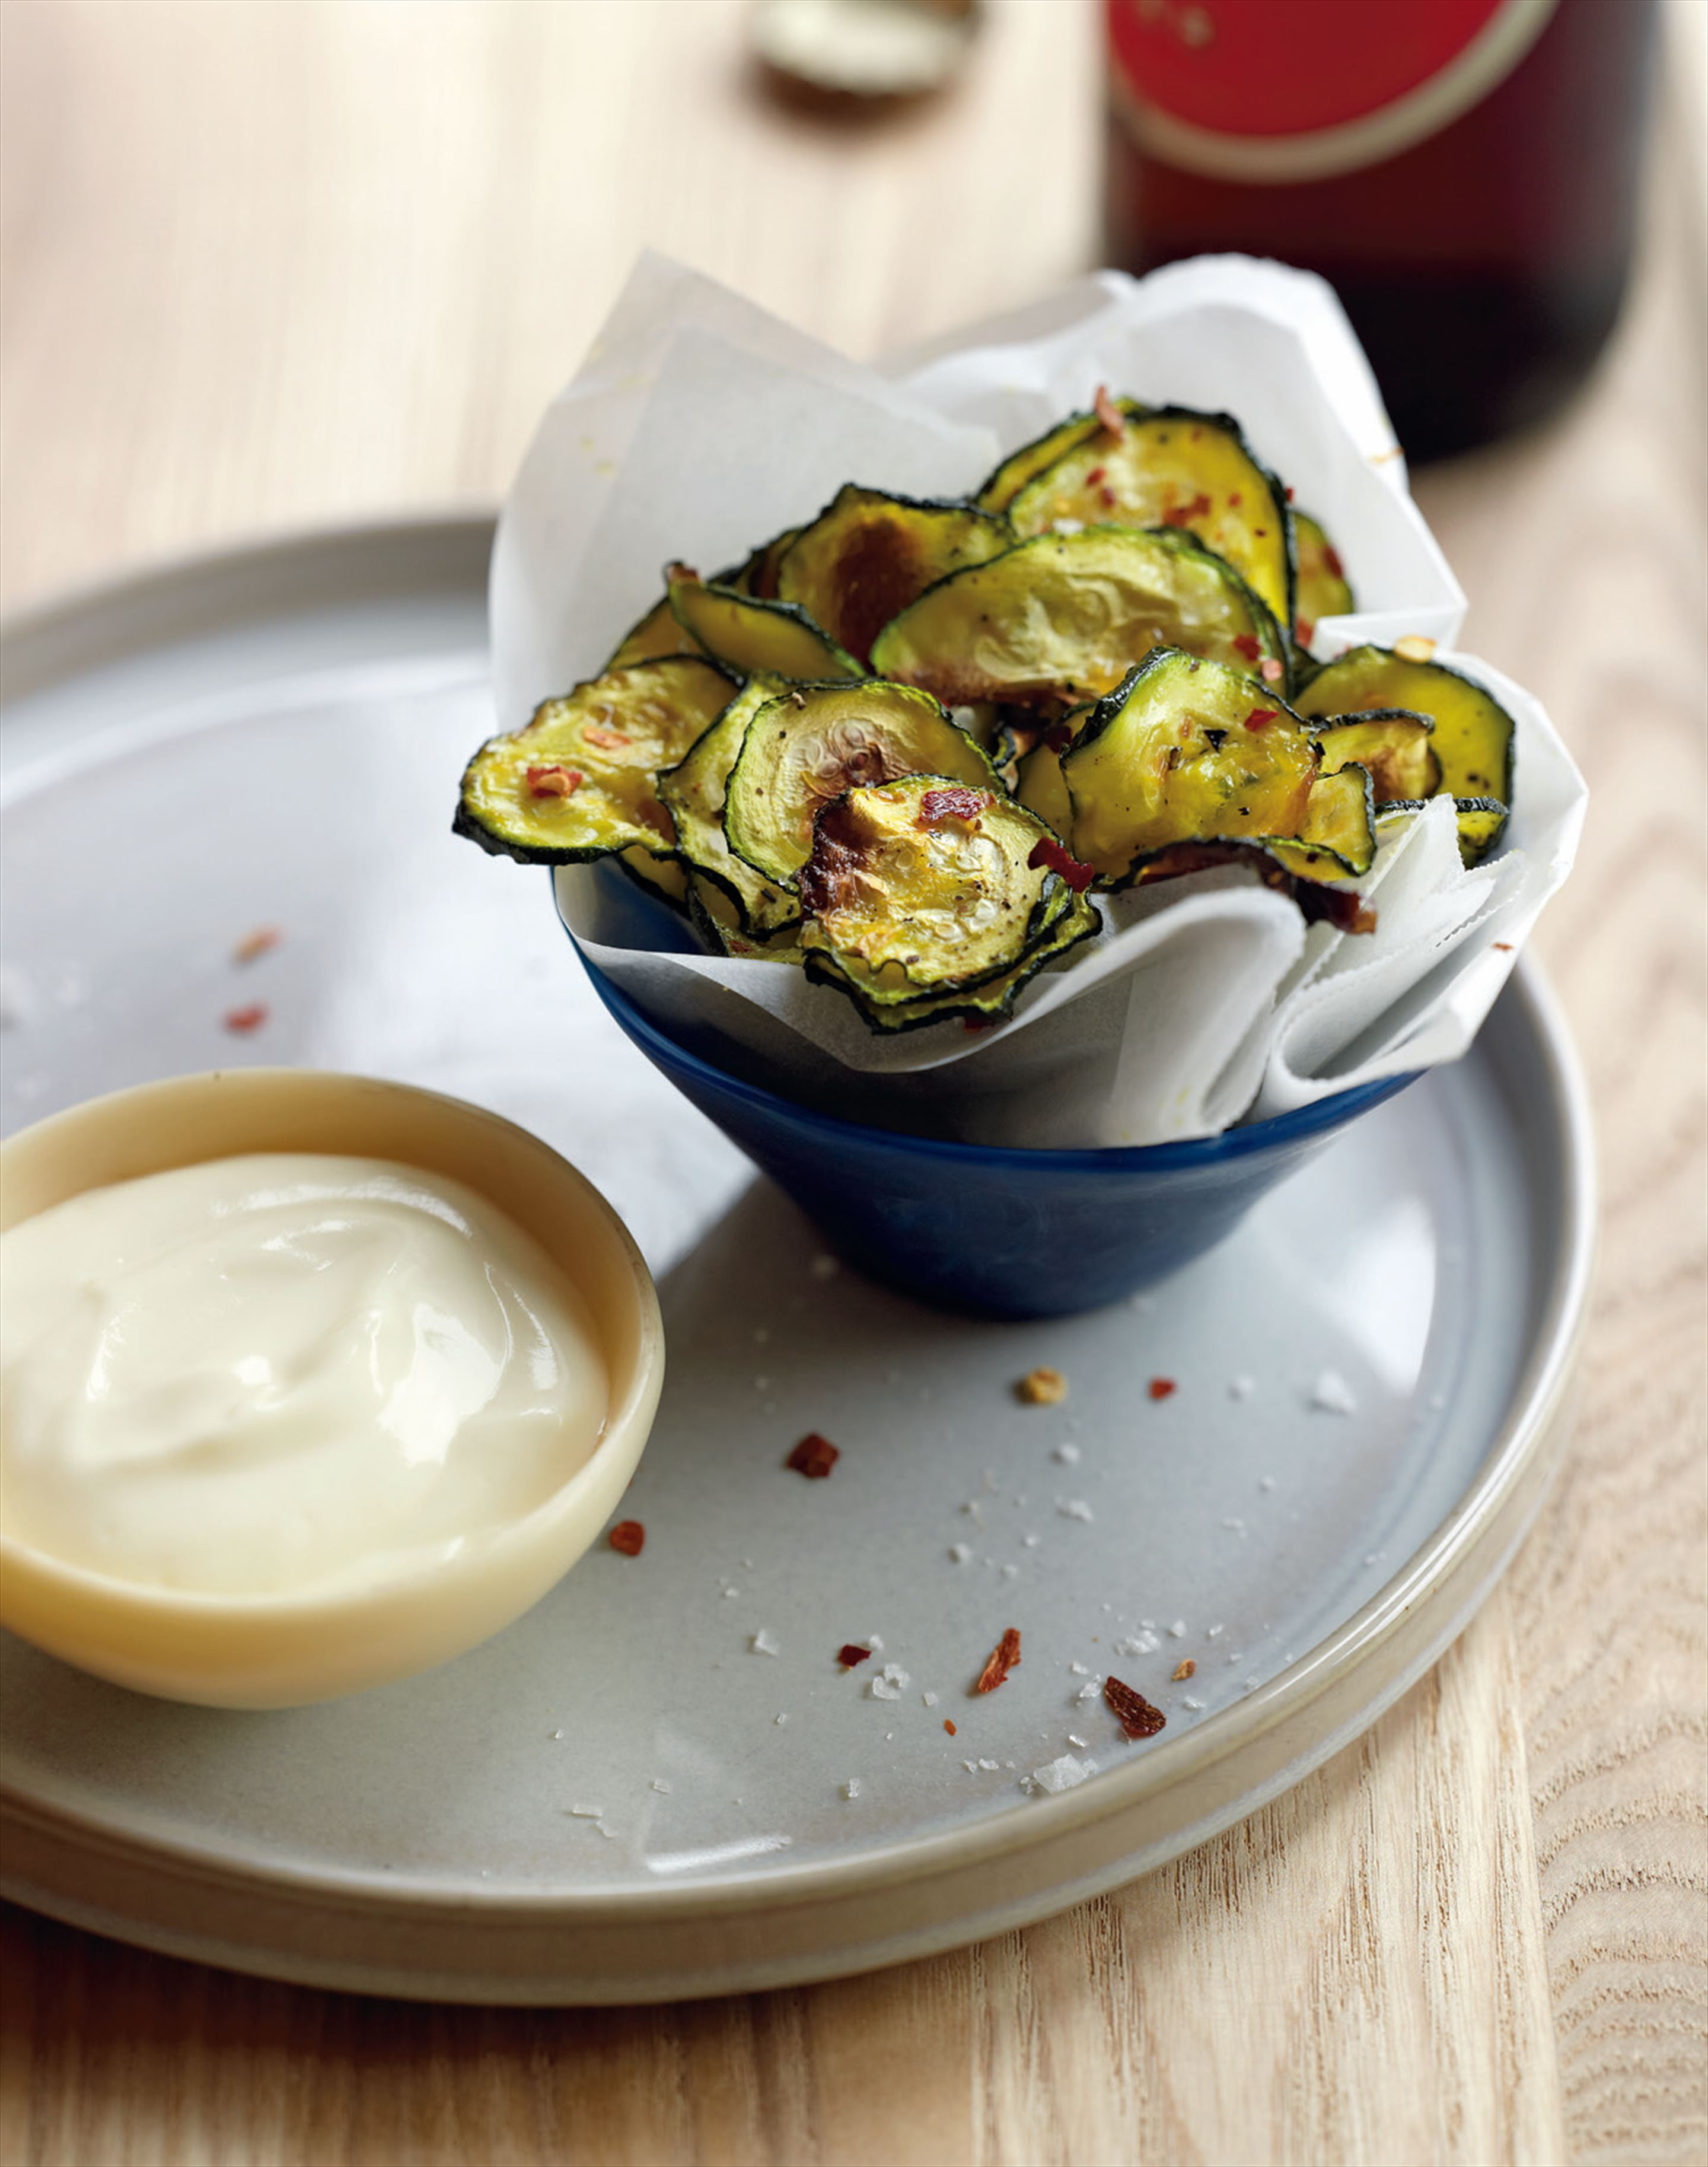 Zucchini 'chips' with aïoli